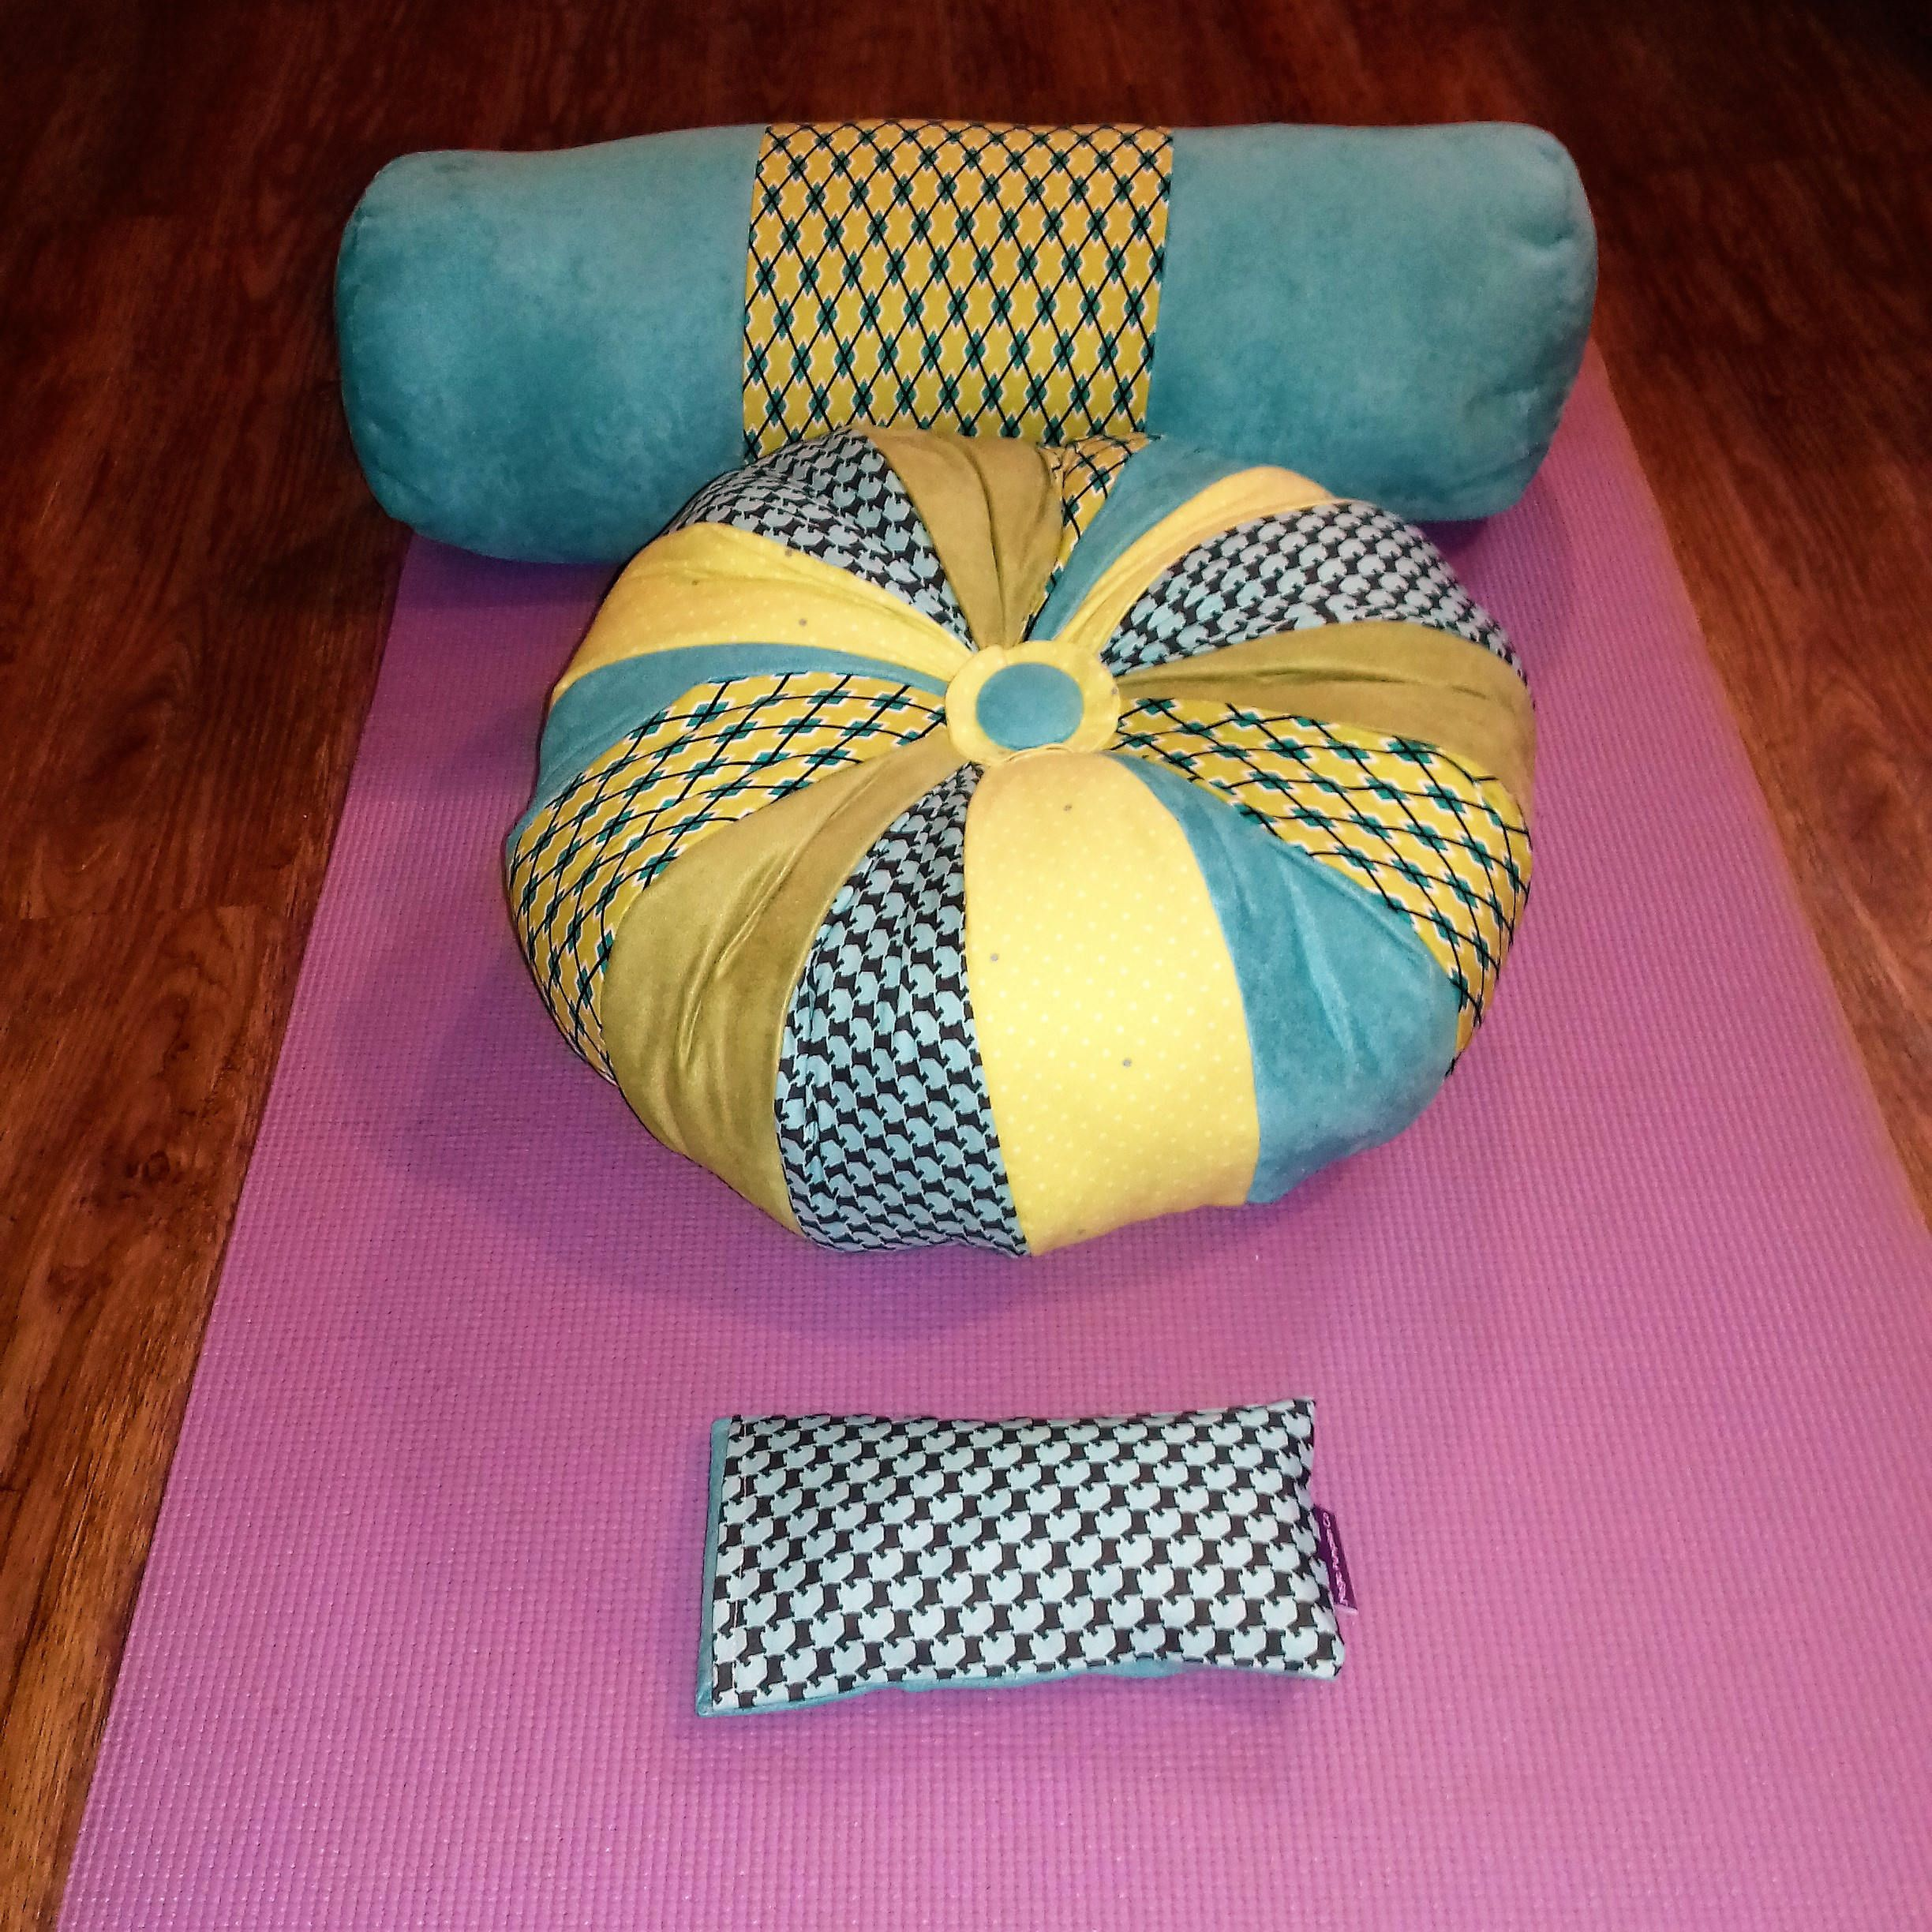 weeds pillow flaxseed yoga pillows filled cushion to sale kukai for make blanket how therapeutic gallery eye purple